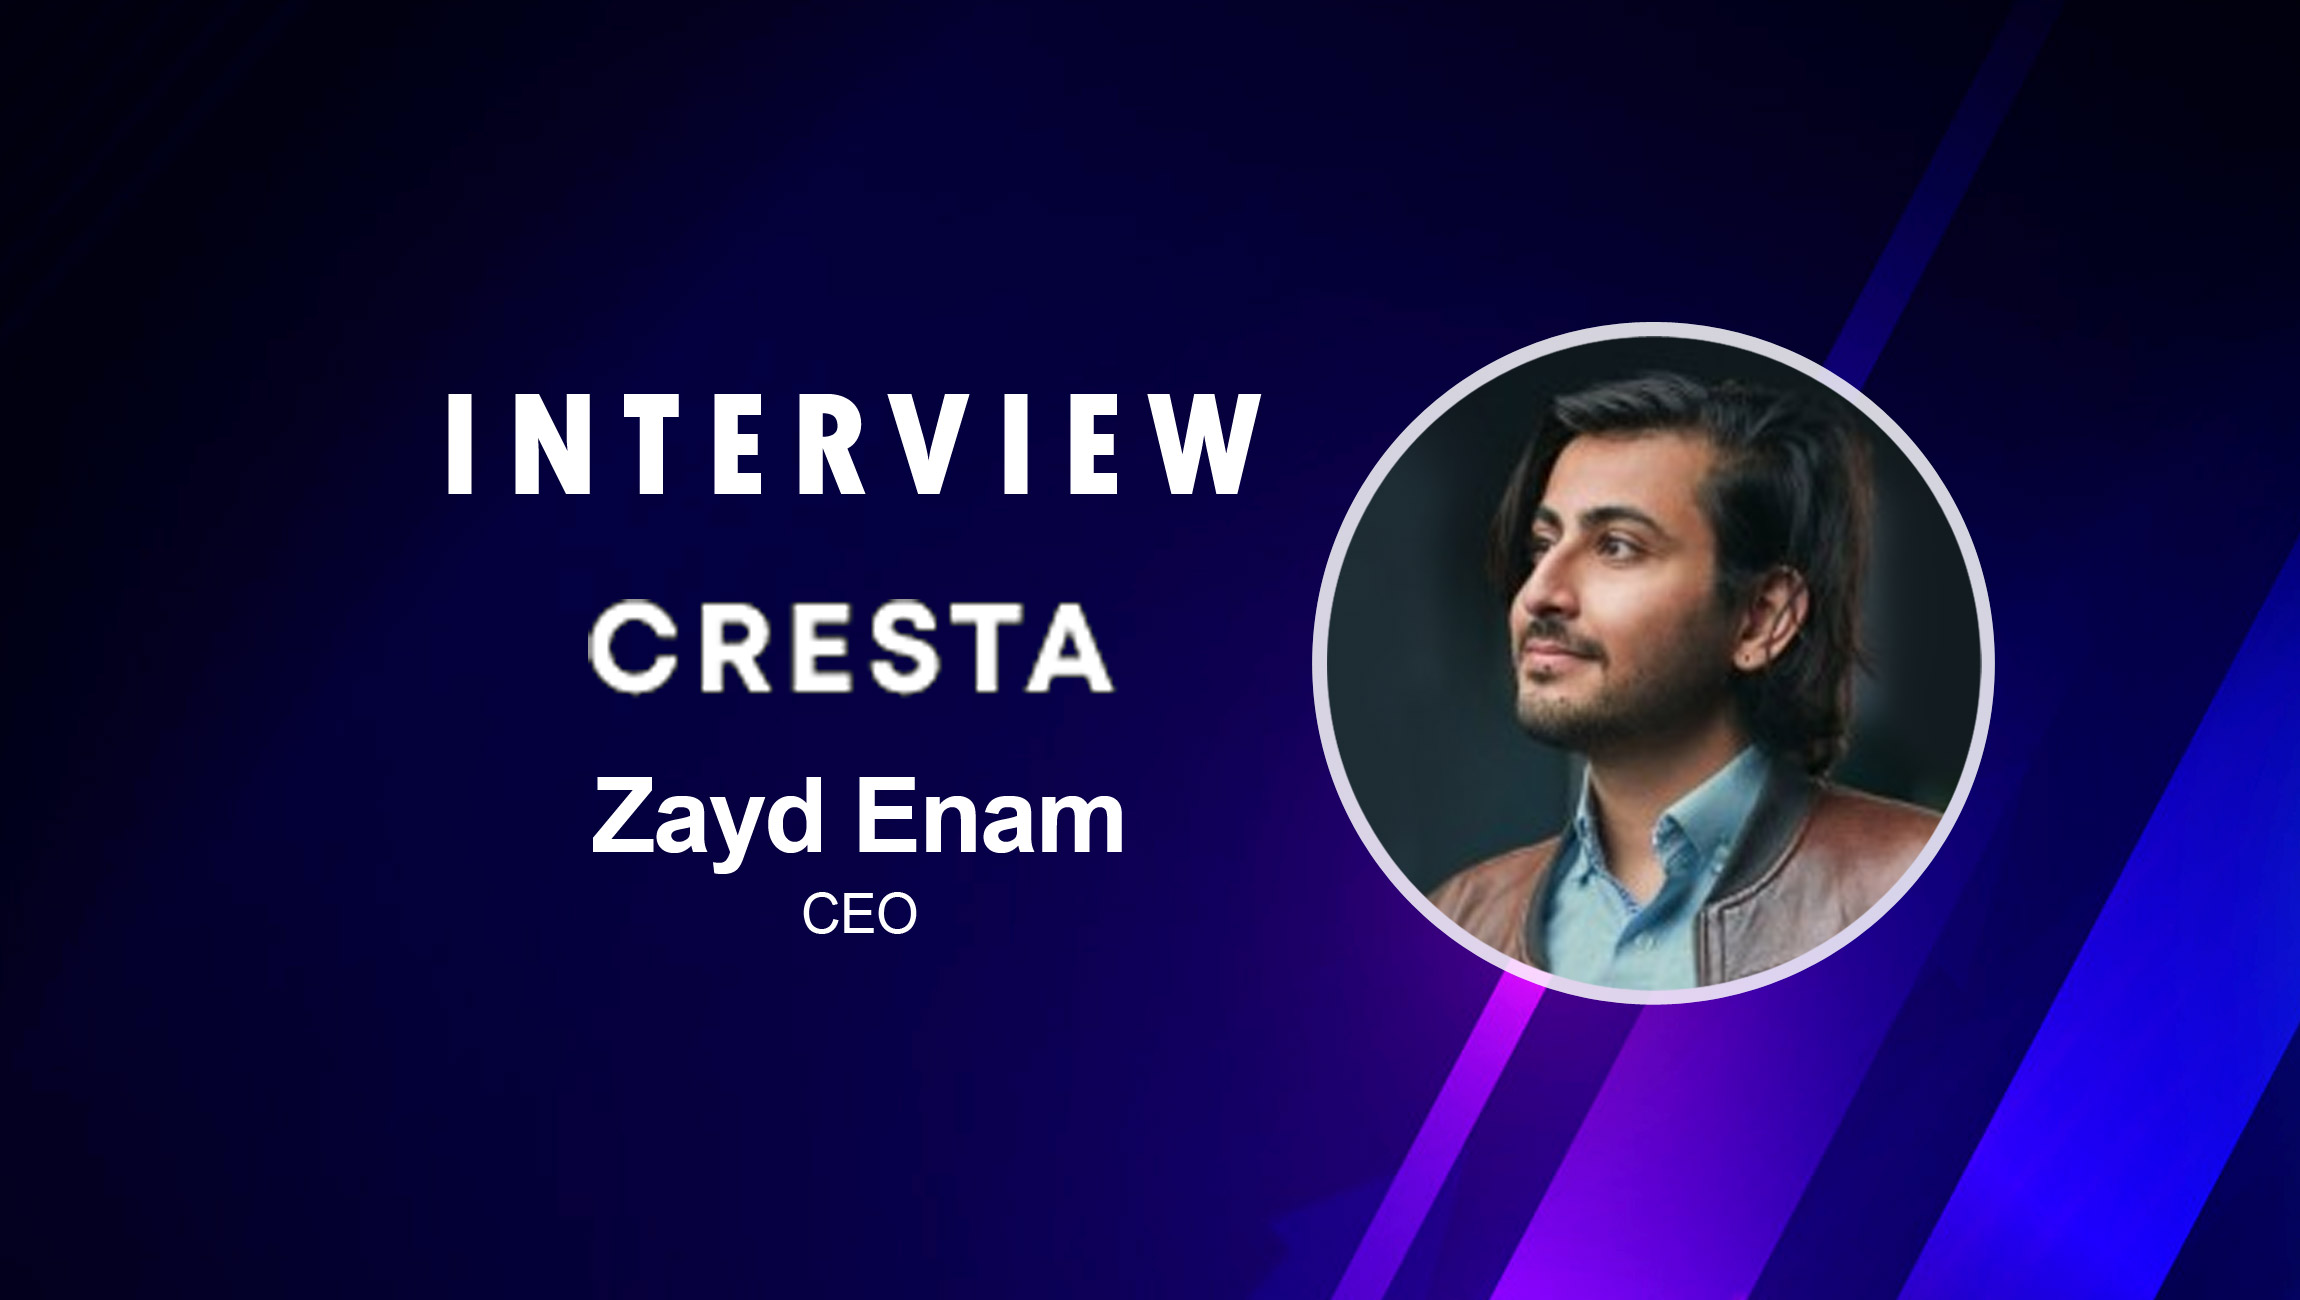 SalesTechStar Interview with Zayd Enam, Co-Founder and CEO of Cresta